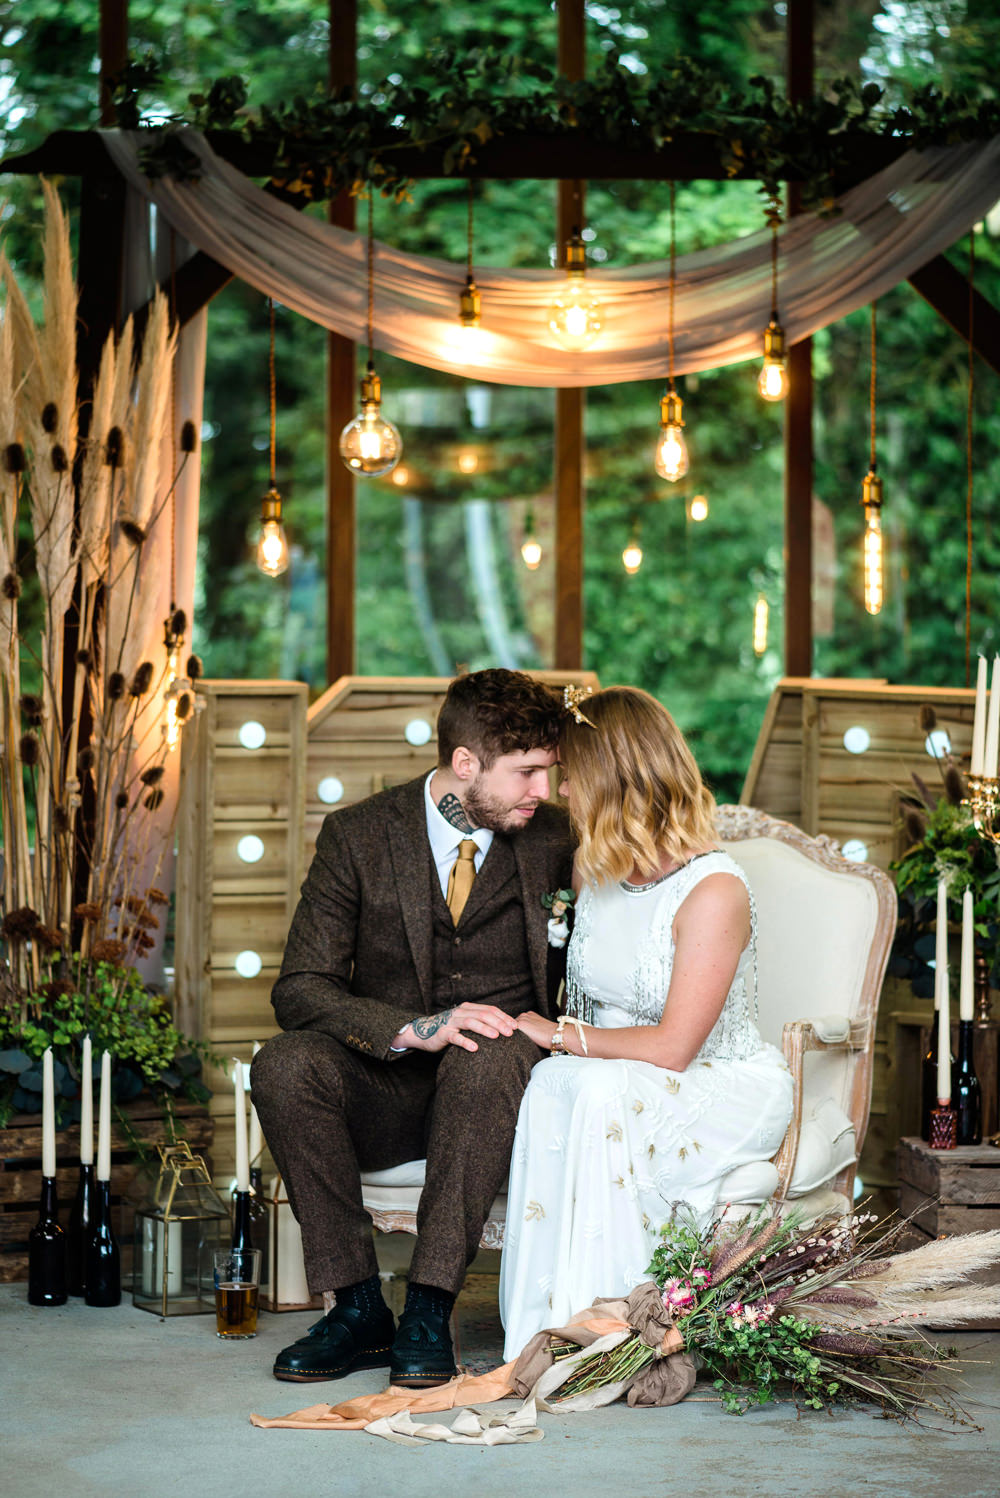 Indie Wedding Ideas Kat Antos-Lewis Photography